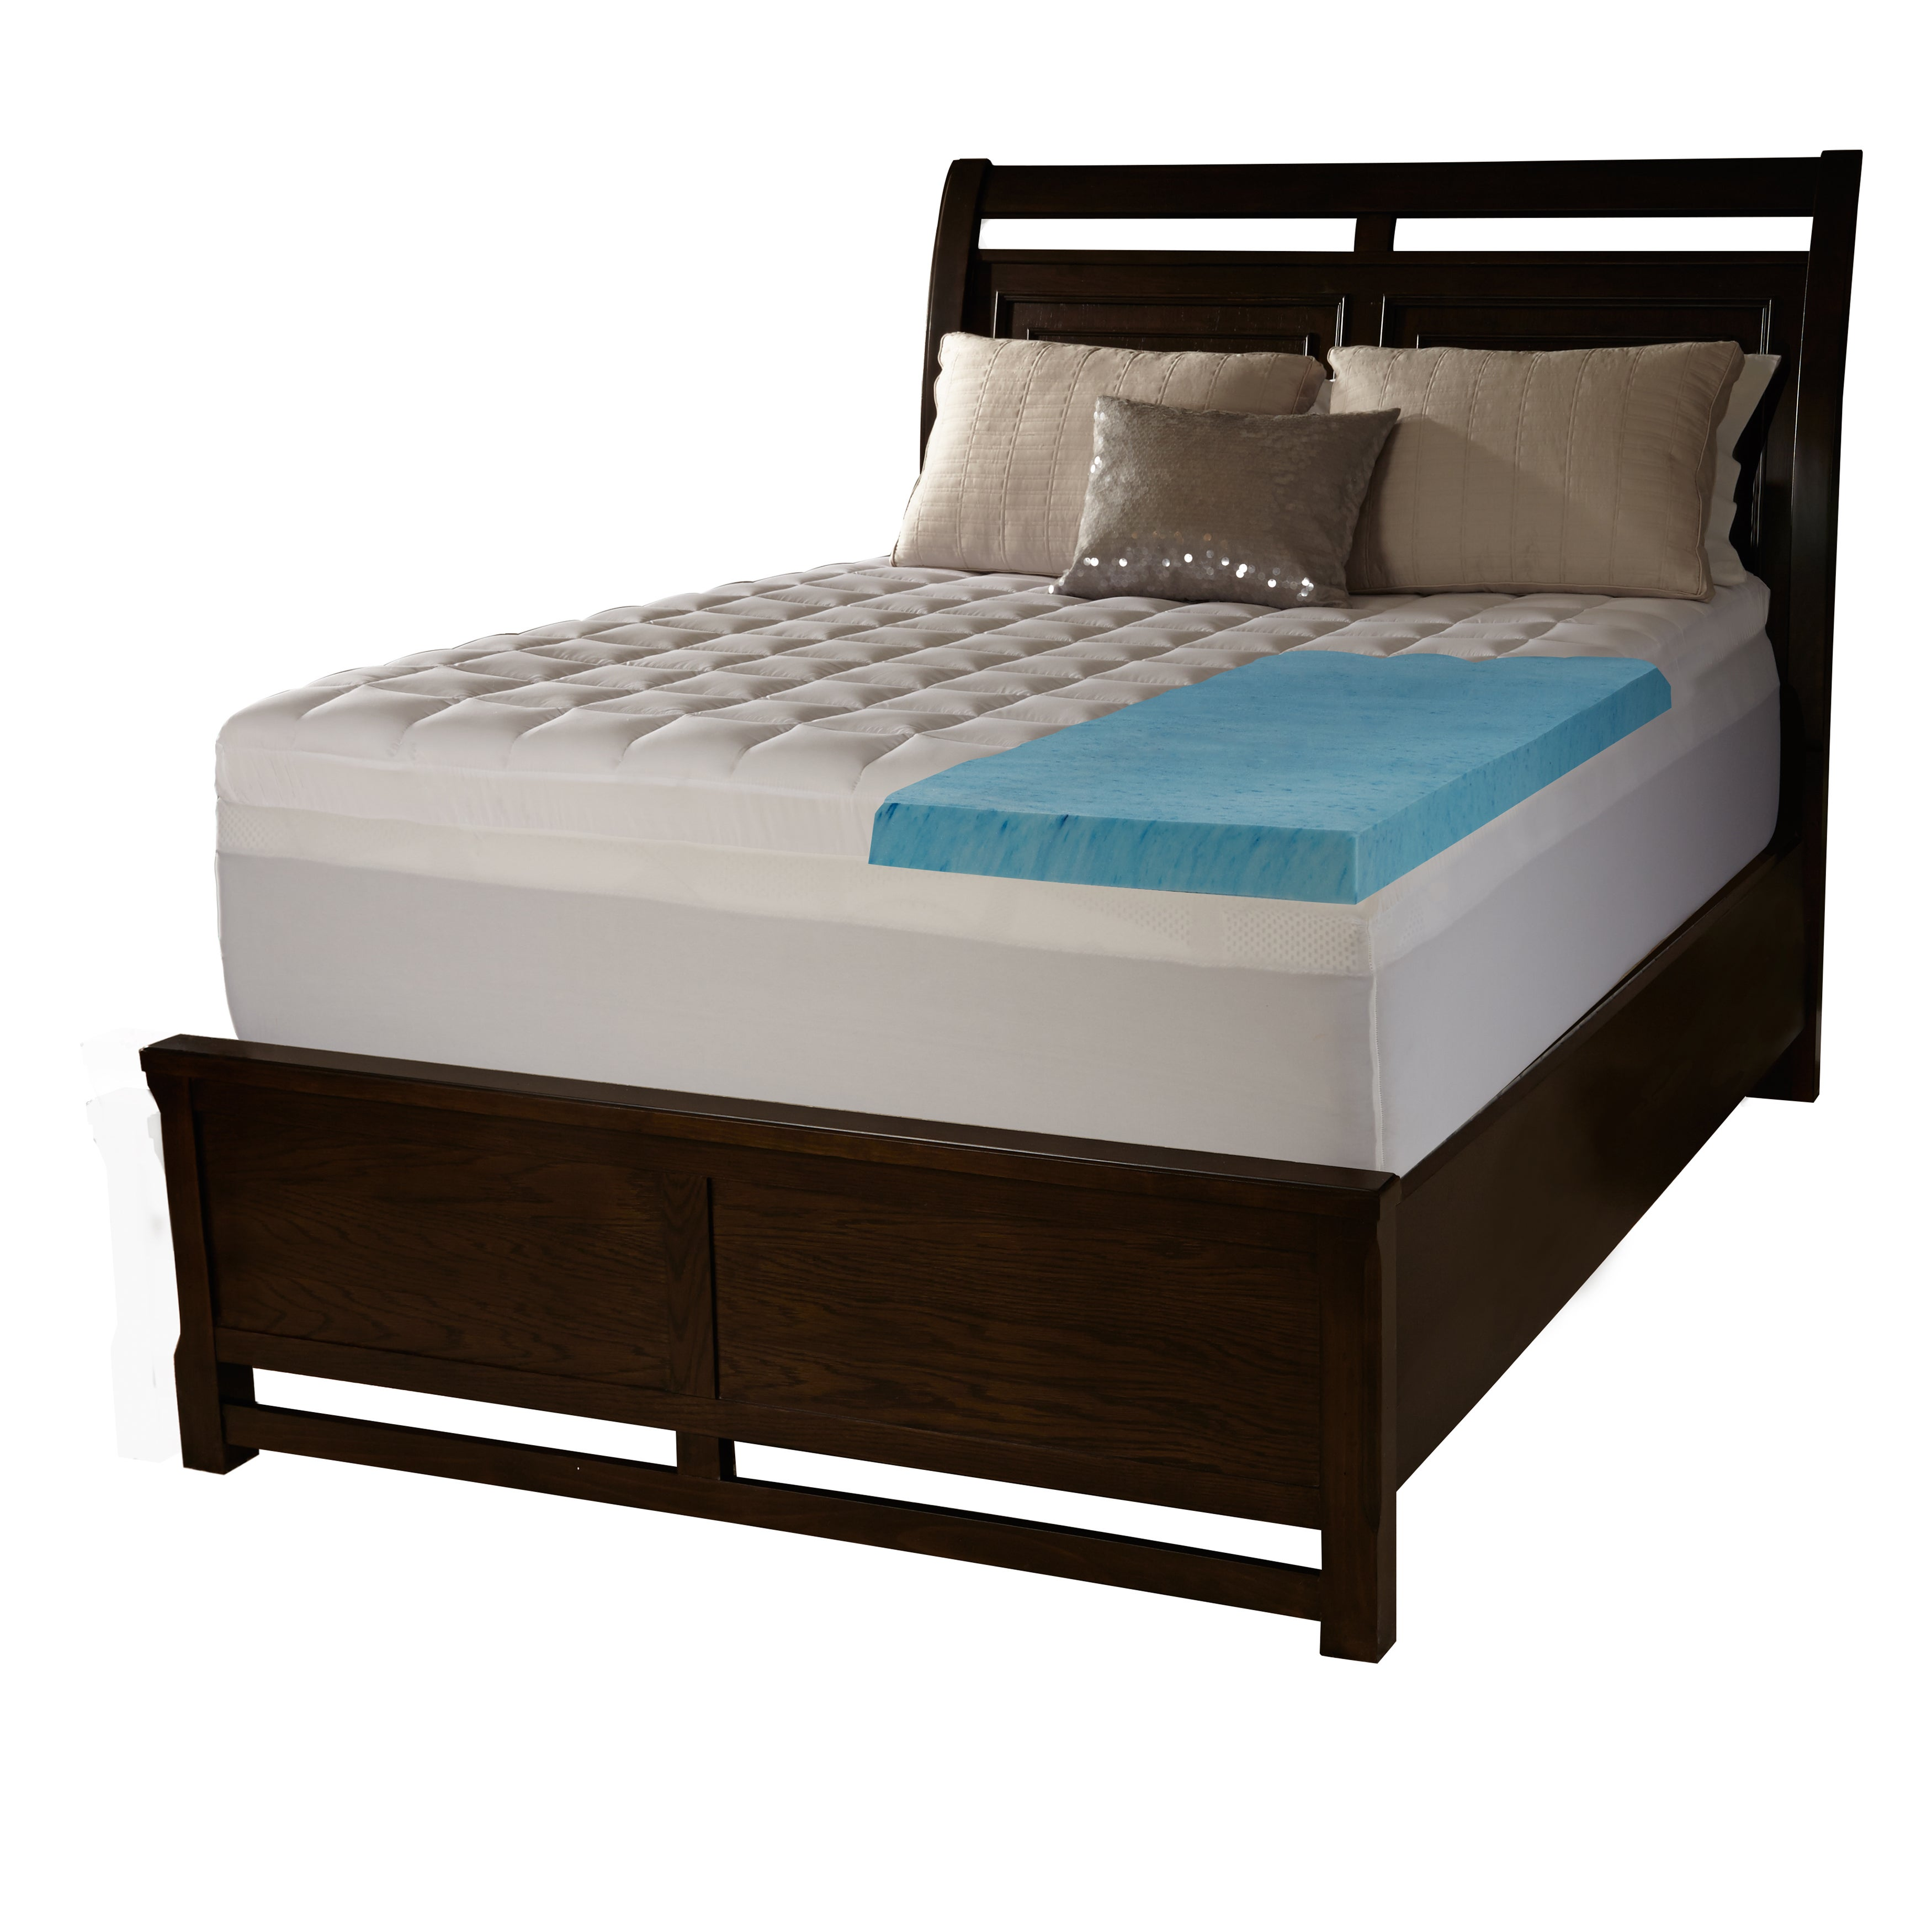 fiber free swisslux blend foam mattress today bedding classic topper shipping and product inch overstock memory bath